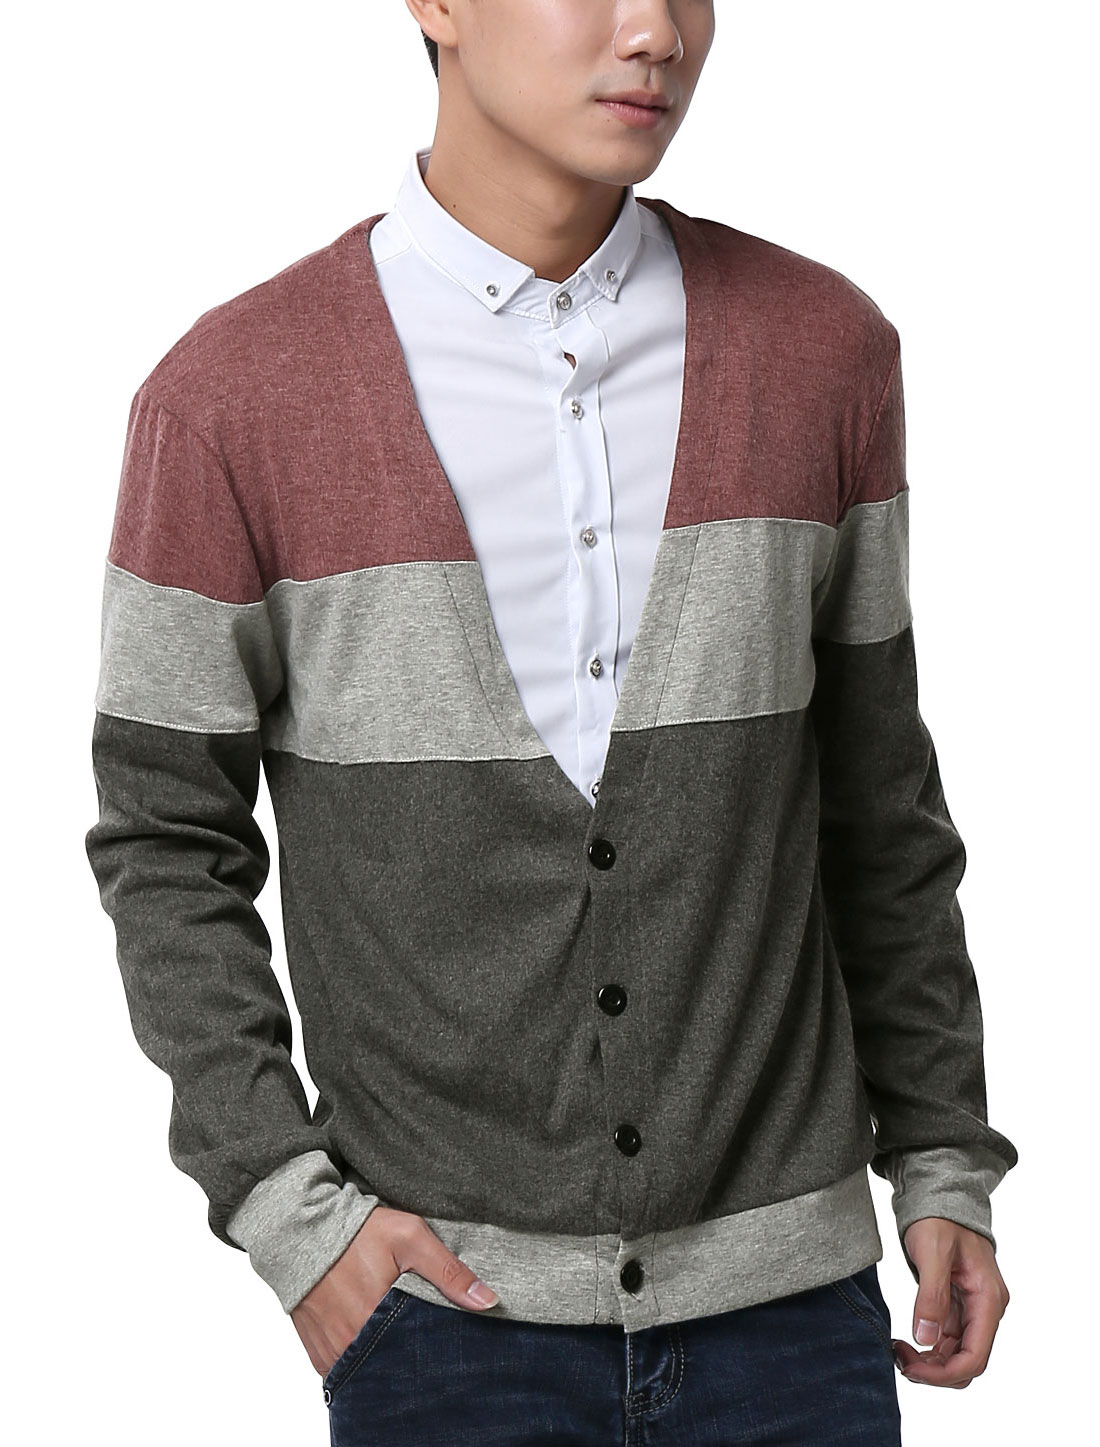 Men Long Sleeve Color Block Button Down Casual Cardigans Gray Burgundy S